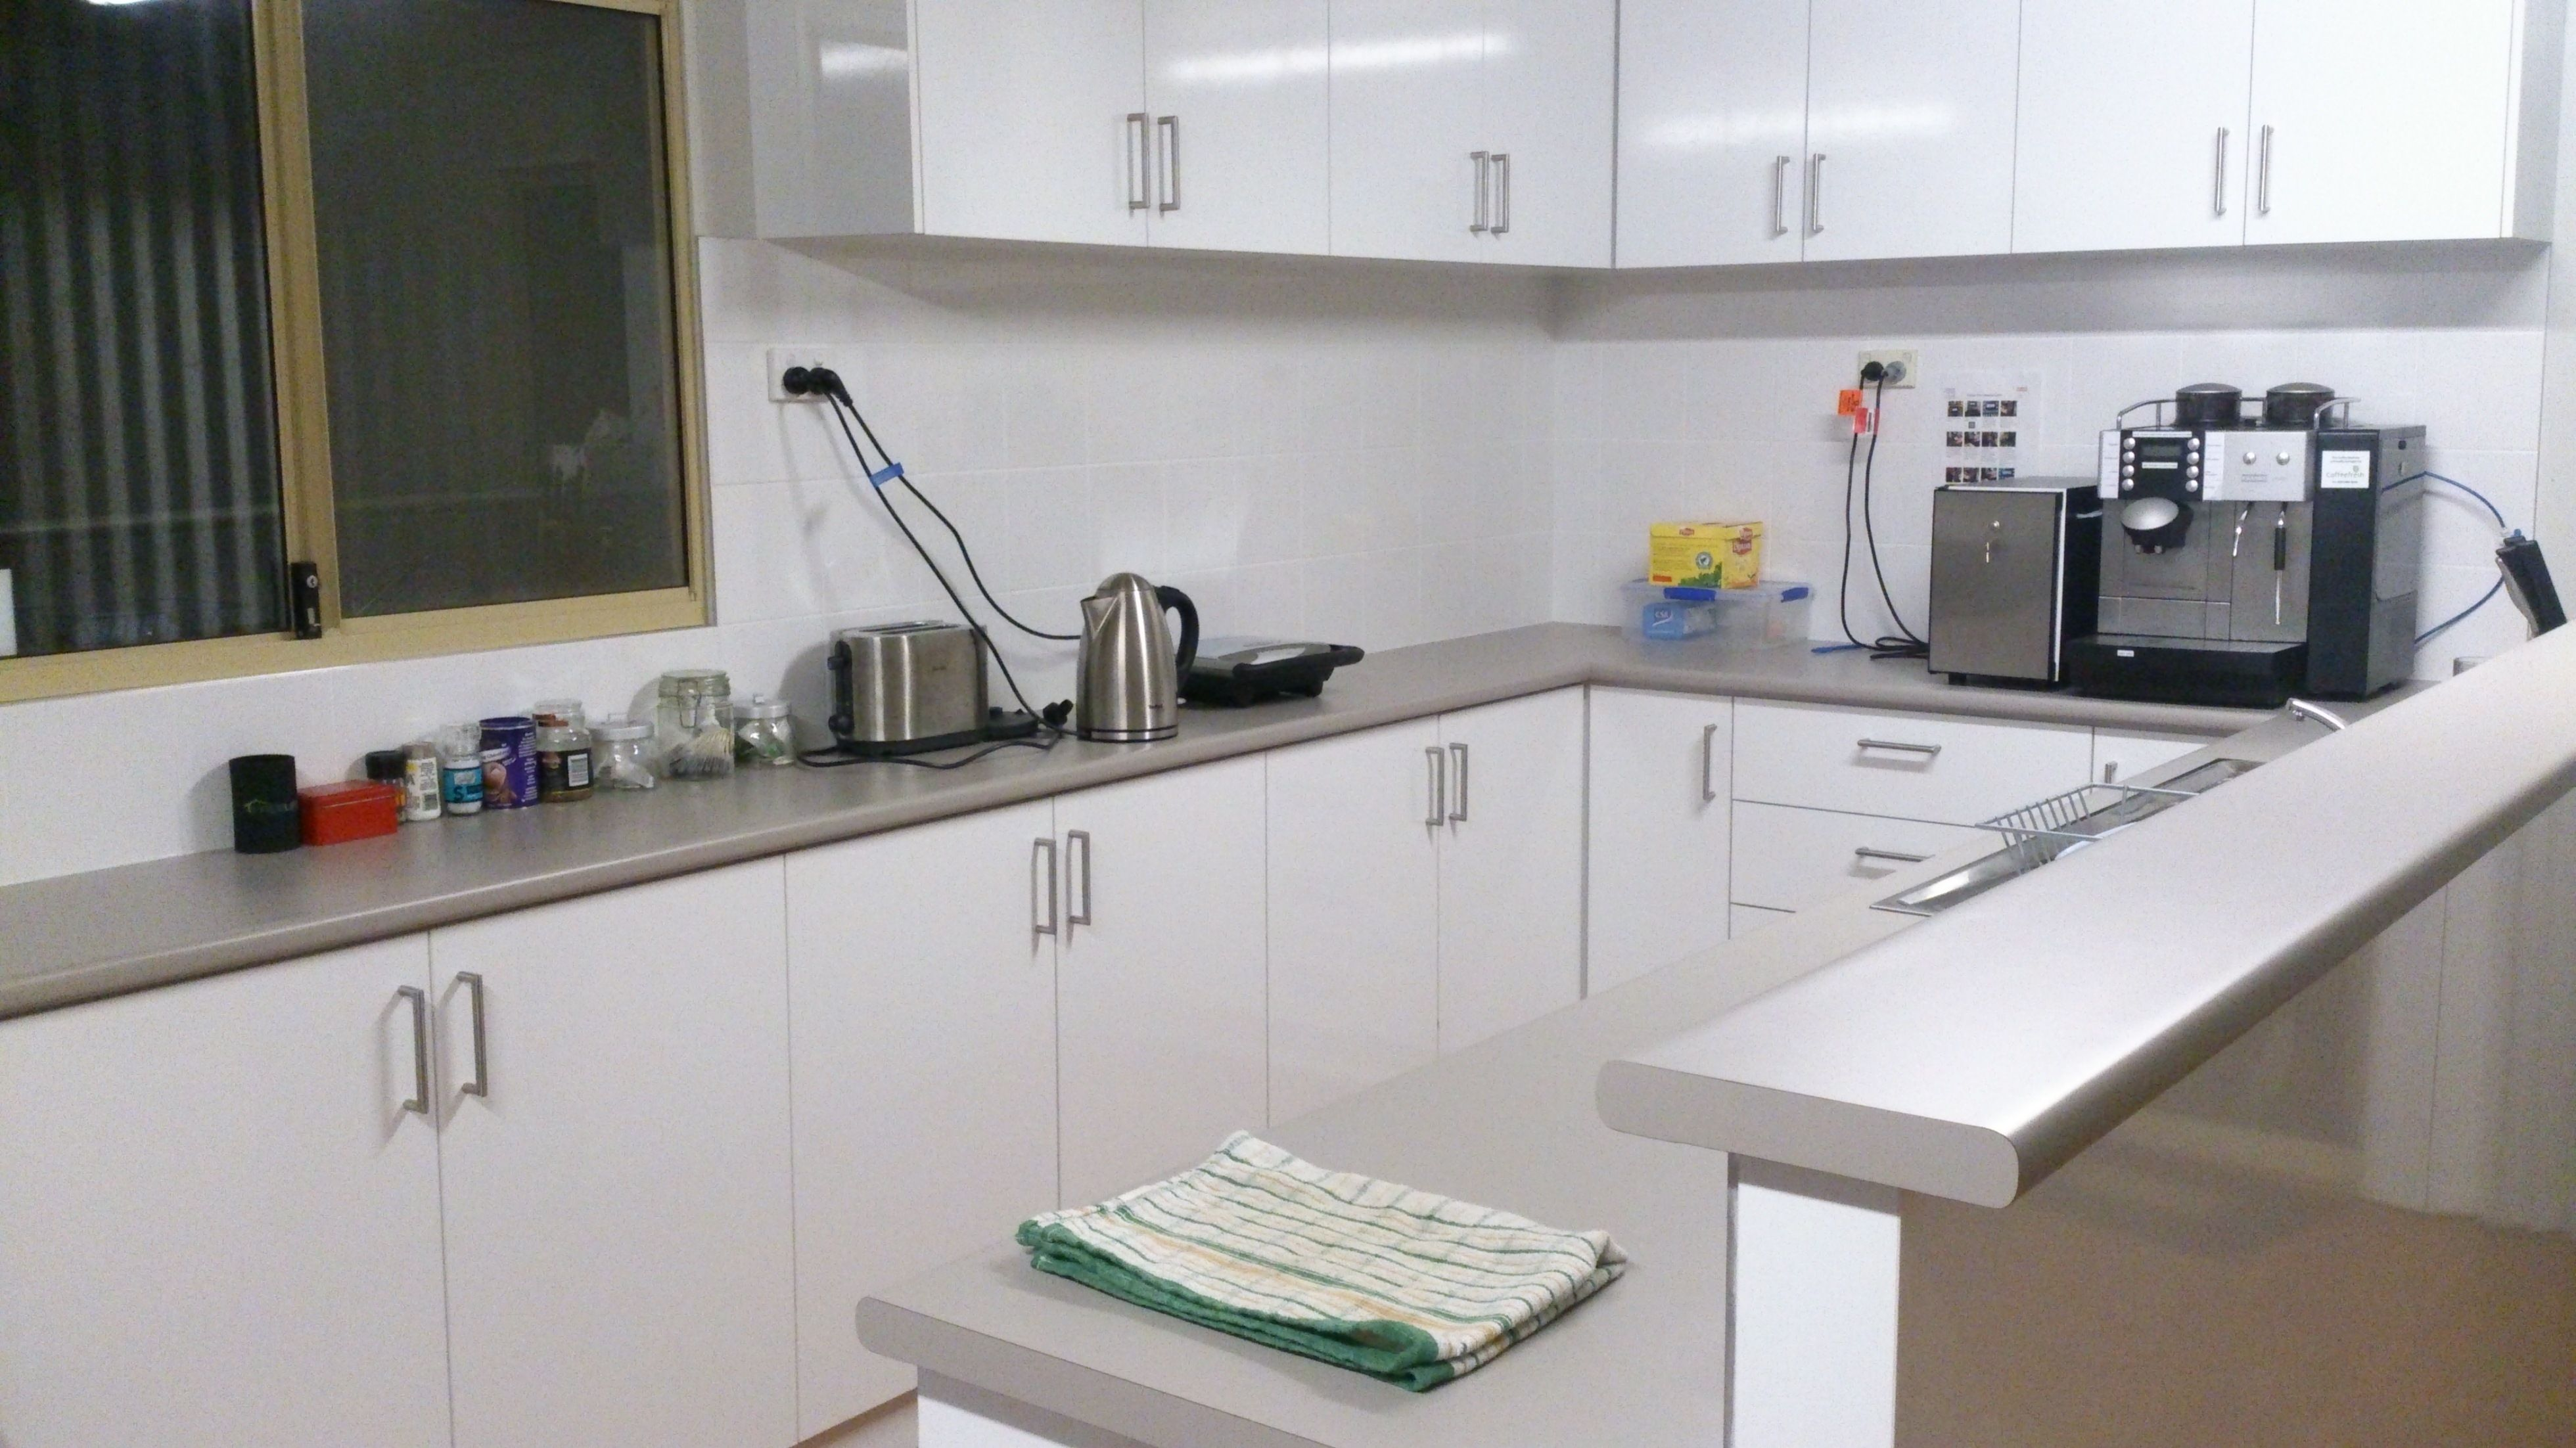 Brian Amp Leo S Cleaning Services Cleaning Looklocalwa